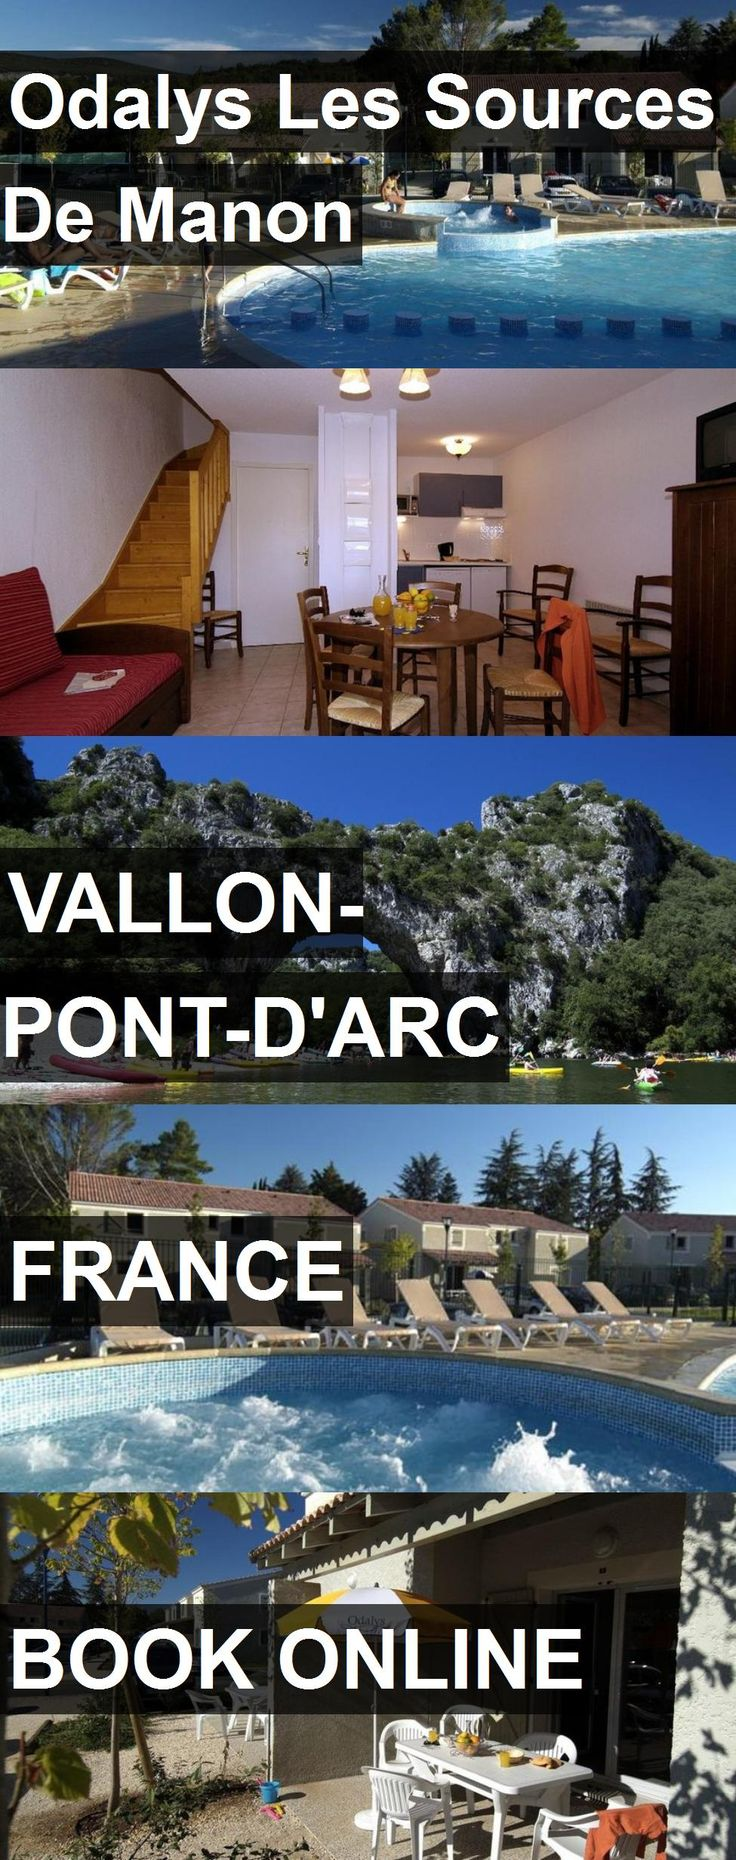 Hotel Odalys Les Sources De Manon in Vallon-Pont-d'Arc, France. For more information, photos, reviews and best prices please follow the link. #France #Vallon-Pont-d'Arc #travel #vacation #hotel